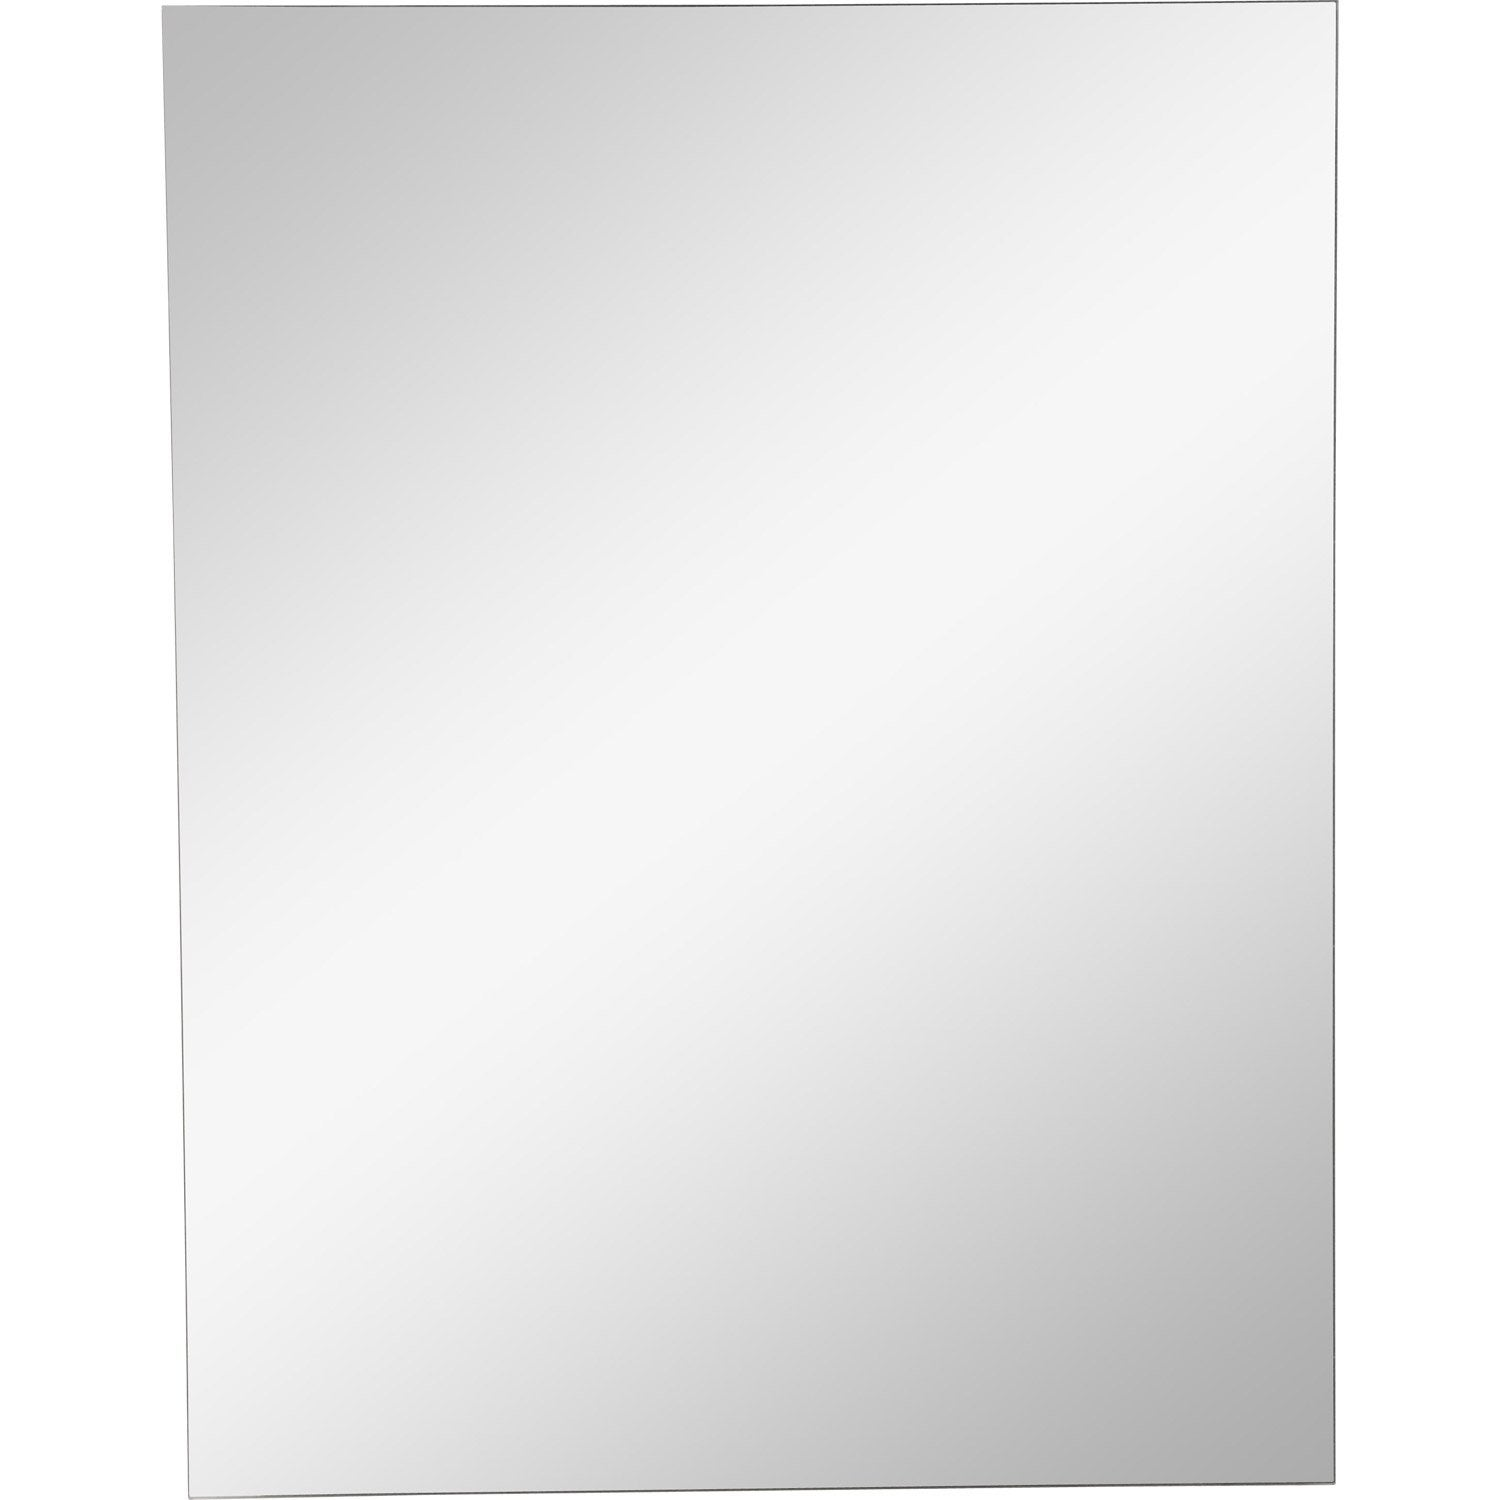 Miroir modulo composer sensea x cm leroy merlin for Grand miroir leroy merlin